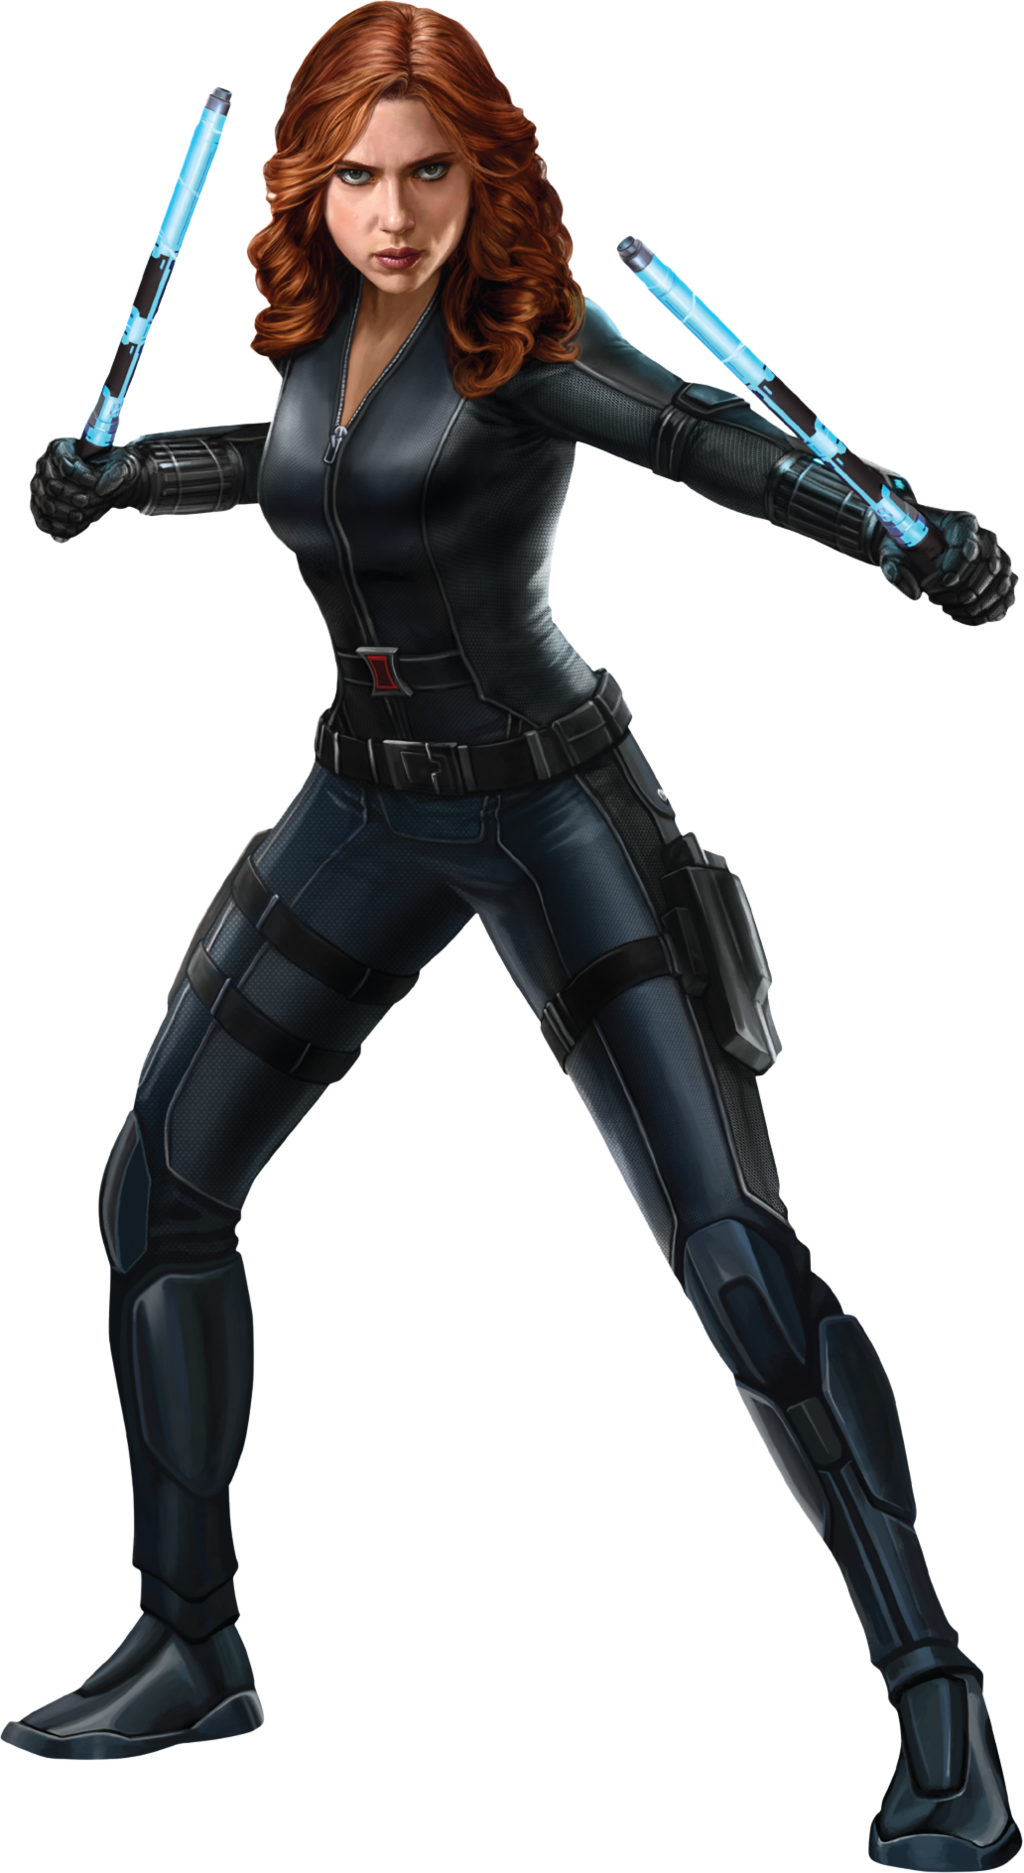 . PlusPng.com Captain America: Civil War - Black Widow 01 PNG by ImAngelPeabody - Black Widow PNG